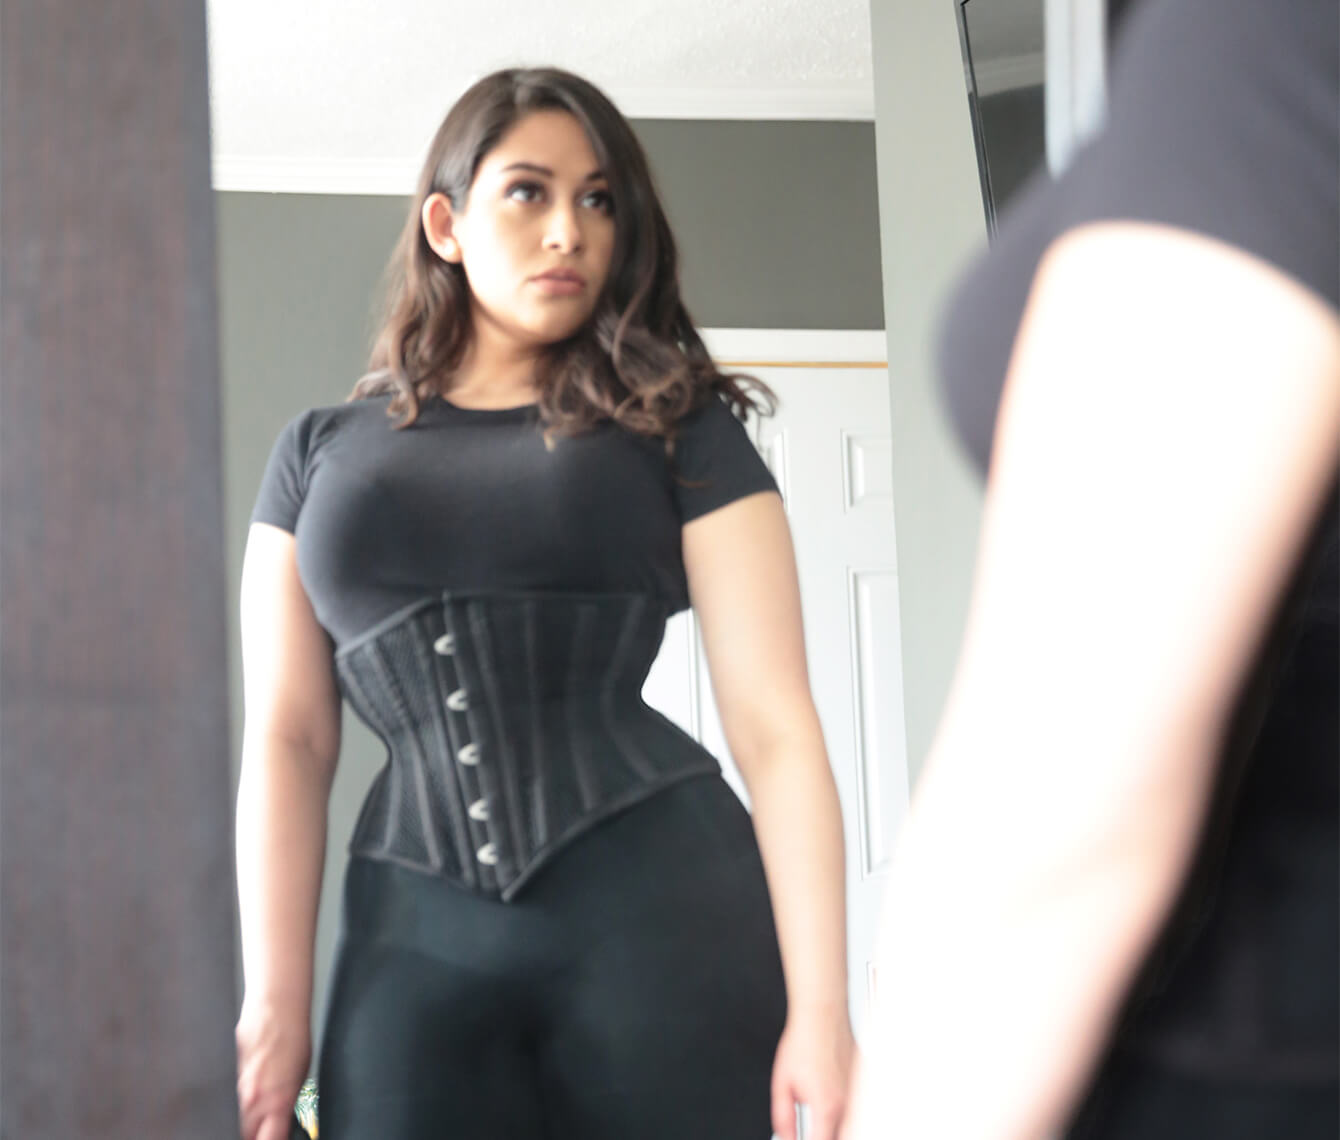 864f9828bc IS WAIST TRAINING RIGHT FOR ME